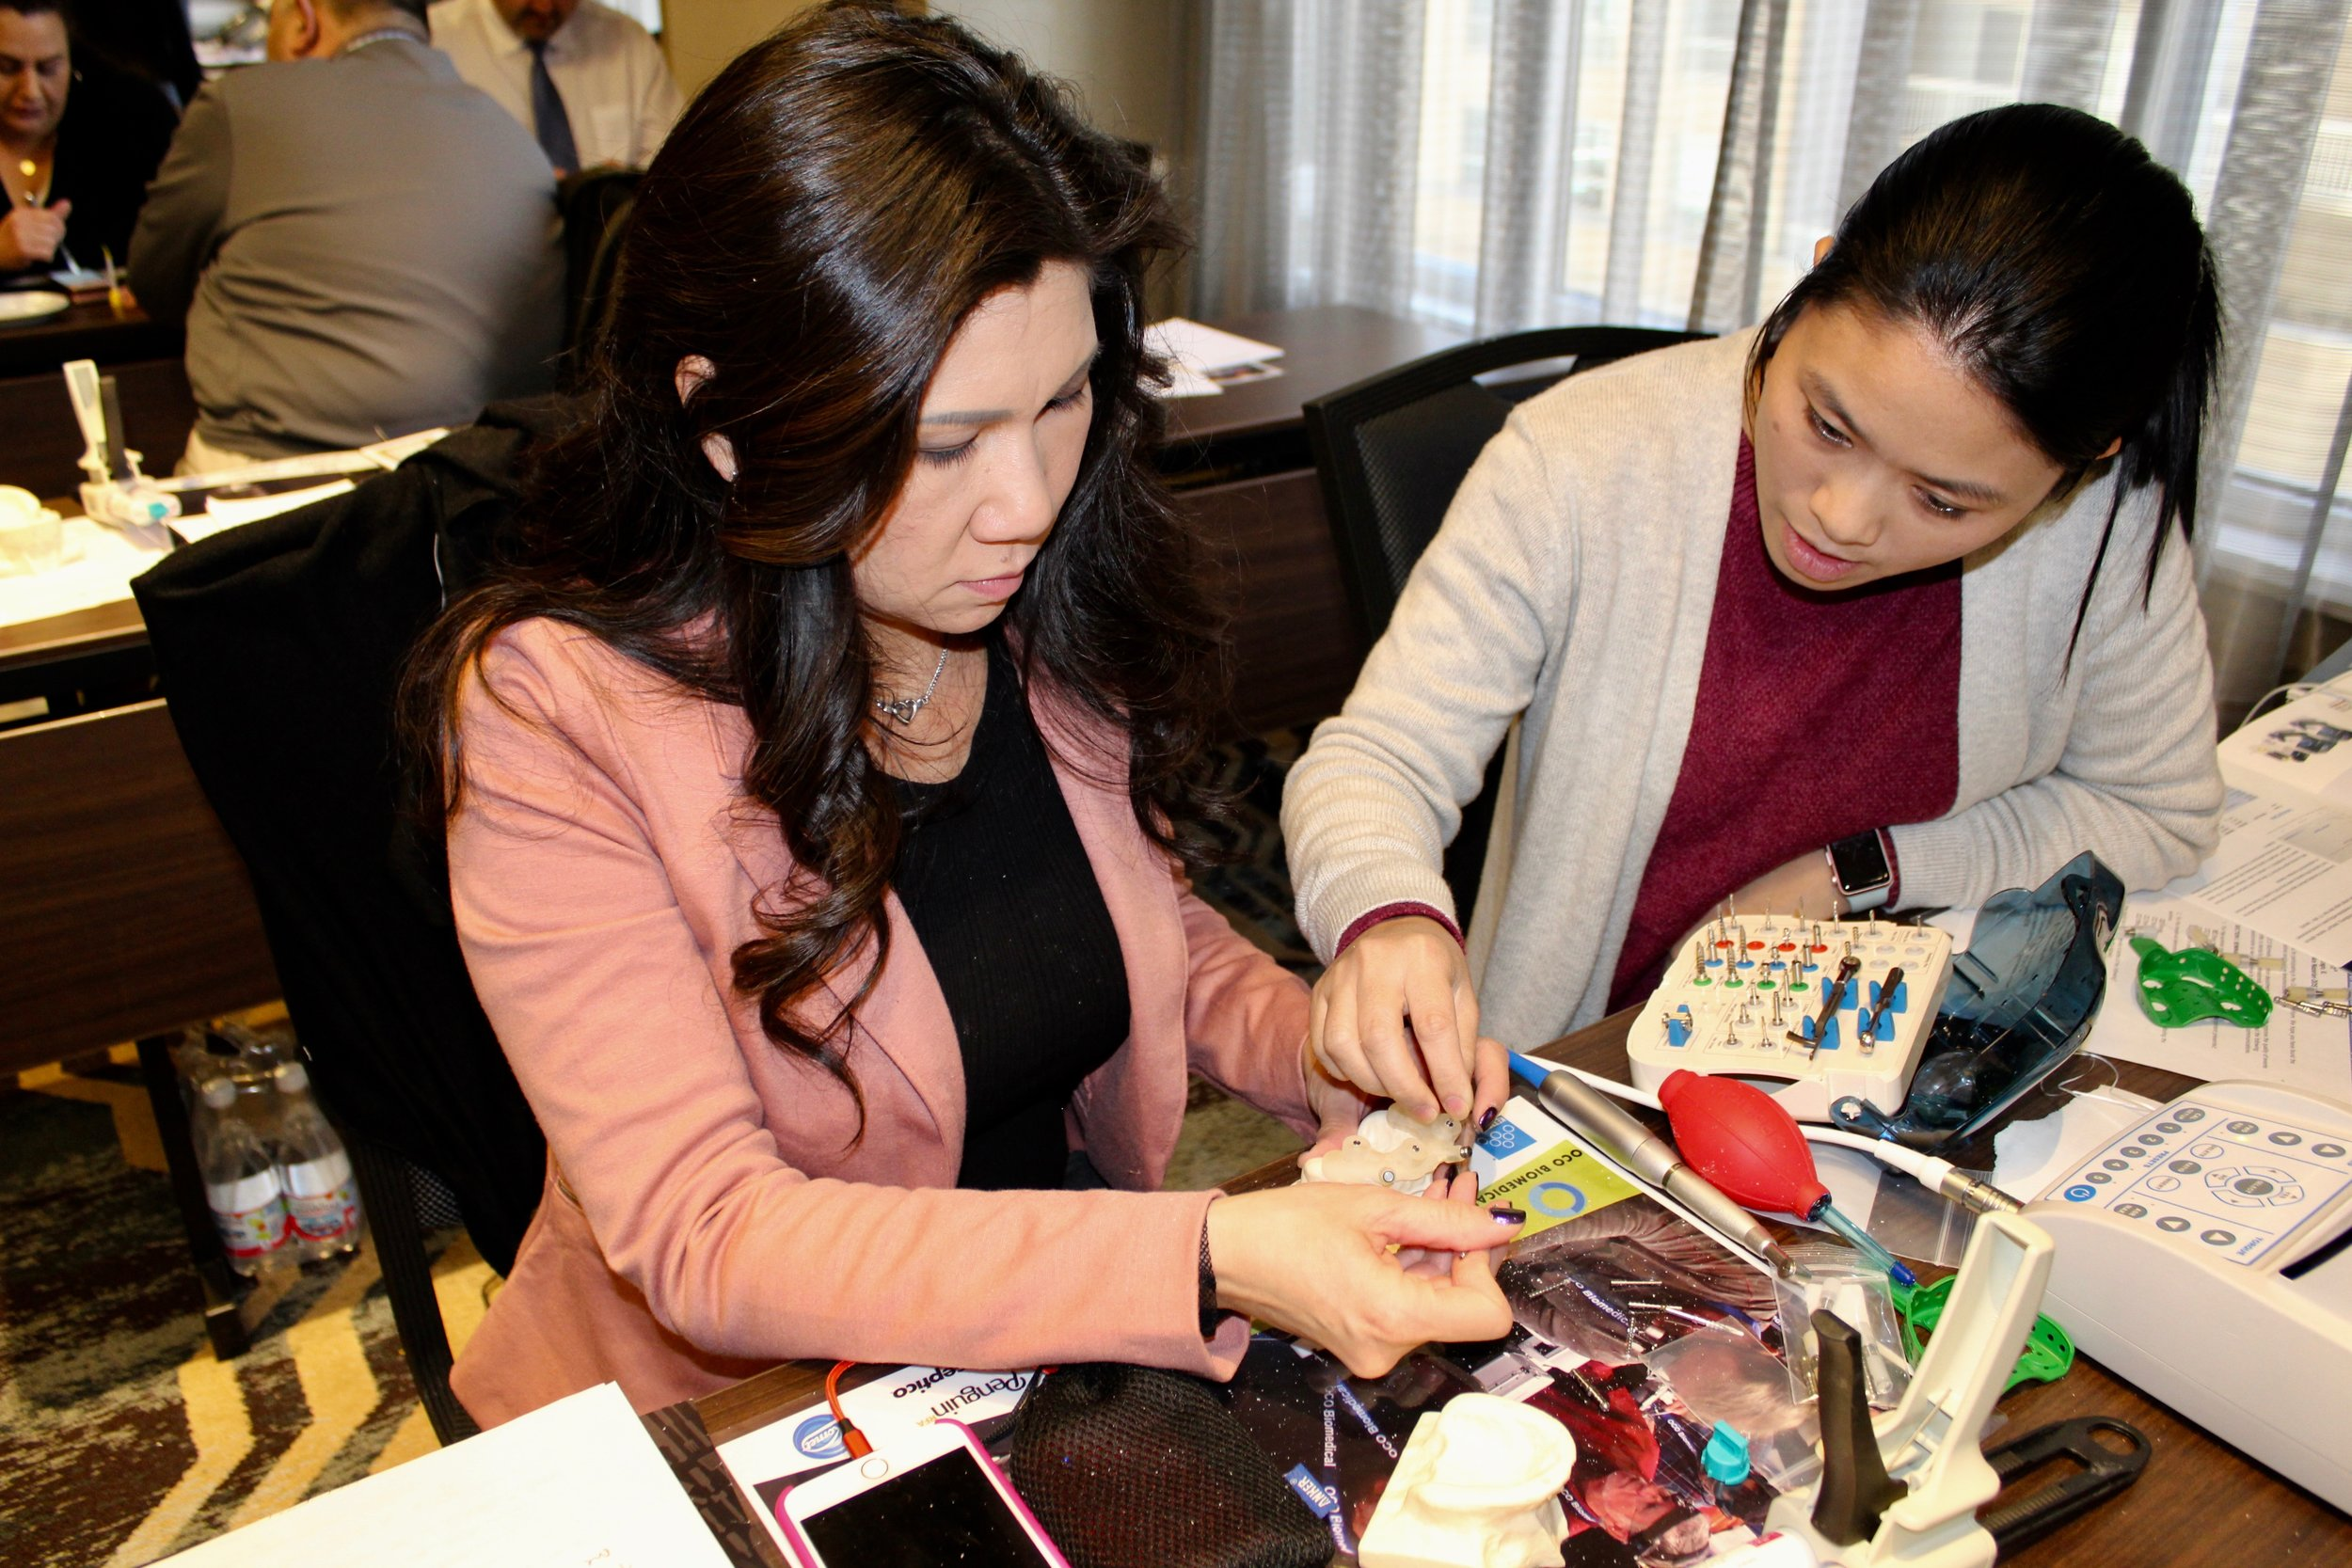 Dr. Mary Tran, and her assistant Anh Phan during a hands-on workshop.